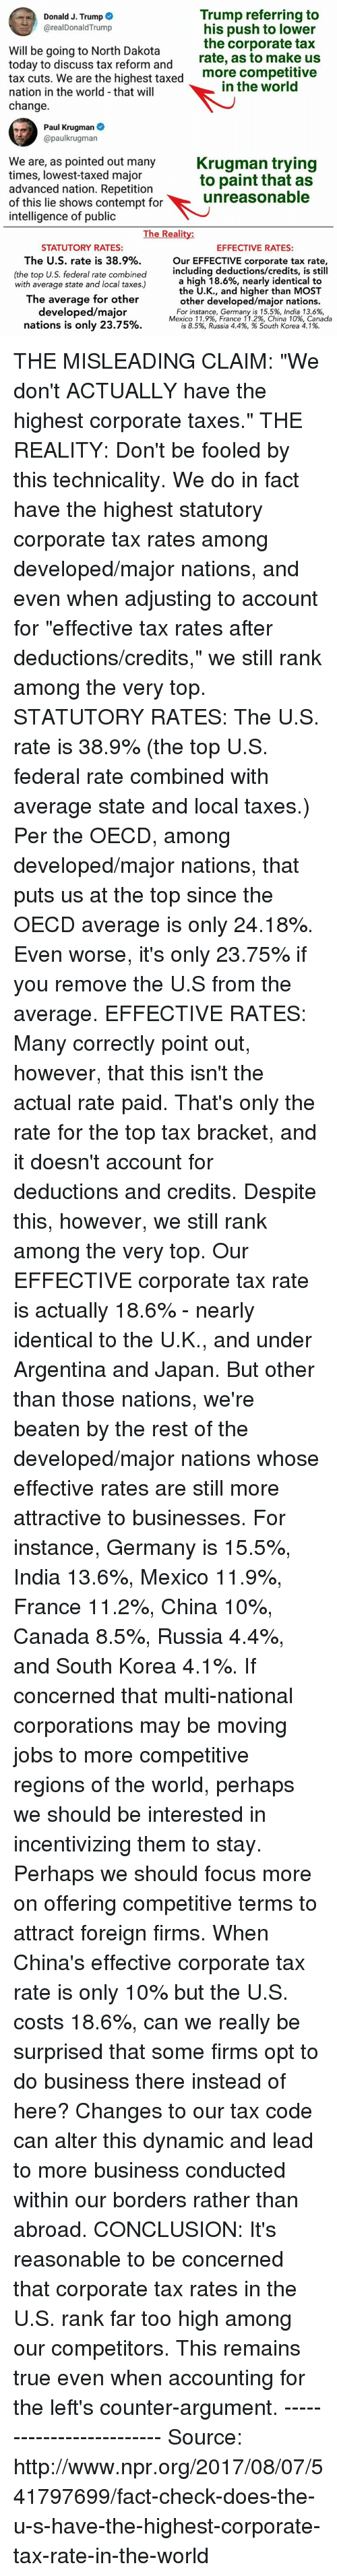 """Contemption: Trump referring to  his push to lower  the corporate tax  rate, as to make us  Donald J. Trump  @realDonaldTrump  Will be going to North Dakota  today to discuss tax reform and  tax cuts. We are the highest taxe  nation in the world that will  change.  d more competitive  in the world  Paul Krugman  @paulkrugman  We are, as pointed out many  times, lowest-taxed major  advanced nation. Repetition  of this lie shows contempt for  intelligence of public  Krugman trying  to paint that as  unreasonable  The Reality:  STATUTORY RATES:  The U.S. rate is 38.9%.  (the top U.S. federal rate combined  with average state and local taxes.)  The average for other  developed/major  nations is only 23.75%  EFFECTIVE RATES:  Our EFFECTIVE corporate tax rate,  including deductions/credits, is still  a high 18.6%, nearly identical to  the U.K., and higher than MOST  other developed/major nations.  For instance, Germany is 15.5%, India 13.6%  Mexico 11.9%, France 11.2%, China 10%, Canada  is 8.5%, Russia 4.4%, % South Korea 4.1% THE MISLEADING CLAIM: """"We don't ACTUALLY have the highest corporate taxes.""""  THE REALITY: Don't be fooled by this technicality. We do in fact have the highest statutory corporate tax rates among developed/major nations, and even when adjusting to account for """"effective tax rates after deductions/credits,"""" we still rank among the very top.   STATUTORY RATES: The U.S. rate is 38.9% (the top U.S. federal rate combined with average state and local taxes.) Per the OECD, among developed/major nations, that puts us at the top since the OECD average is only 24.18%. Even worse, it's only 23.75% if you remove the U.S from the average.   EFFECTIVE RATES: Many correctly point out, however, that this isn't the actual rate paid. That's only the rate for the top tax bracket, and it doesn't account for deductions and credits. Despite this, however, we still rank among the very top. Our EFFECTIVE corporate tax rate is actually 18.6% - nearly identical to the U.K., """